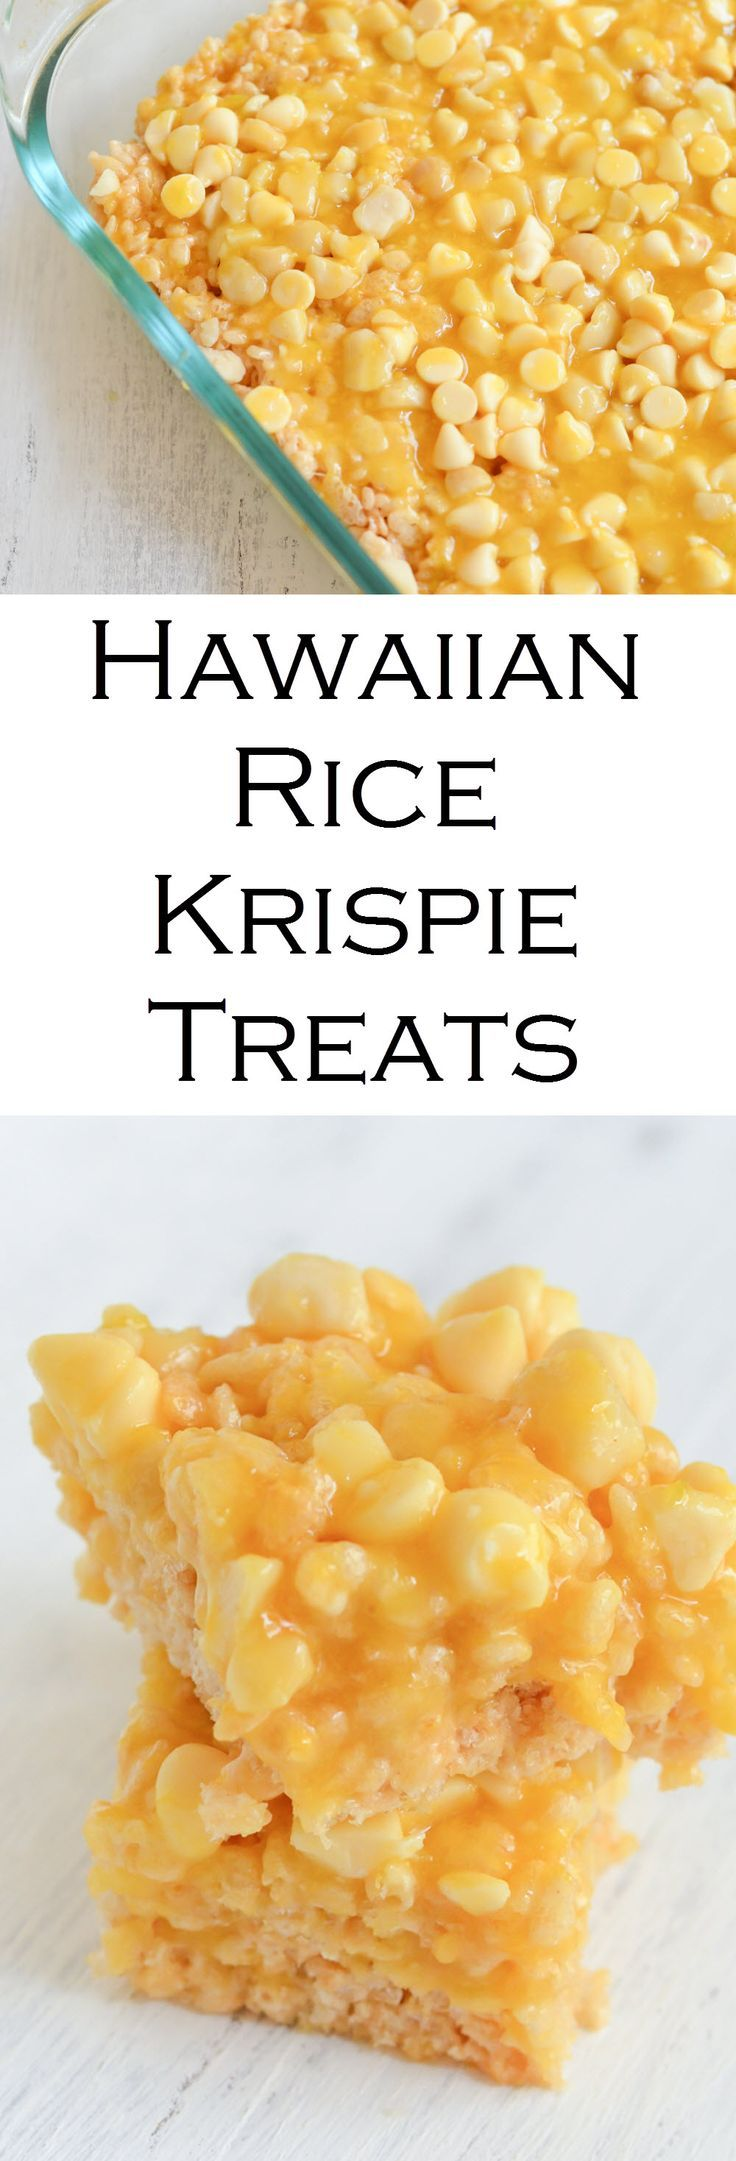 Hawaiian Rice Krispie Treats made with white chocolate, macadamia nuts, and a mango glaze. These ooey gooey treats are everything you could want and more. A fruity dessert that's perfect for your next (Try Everything Recipes For)